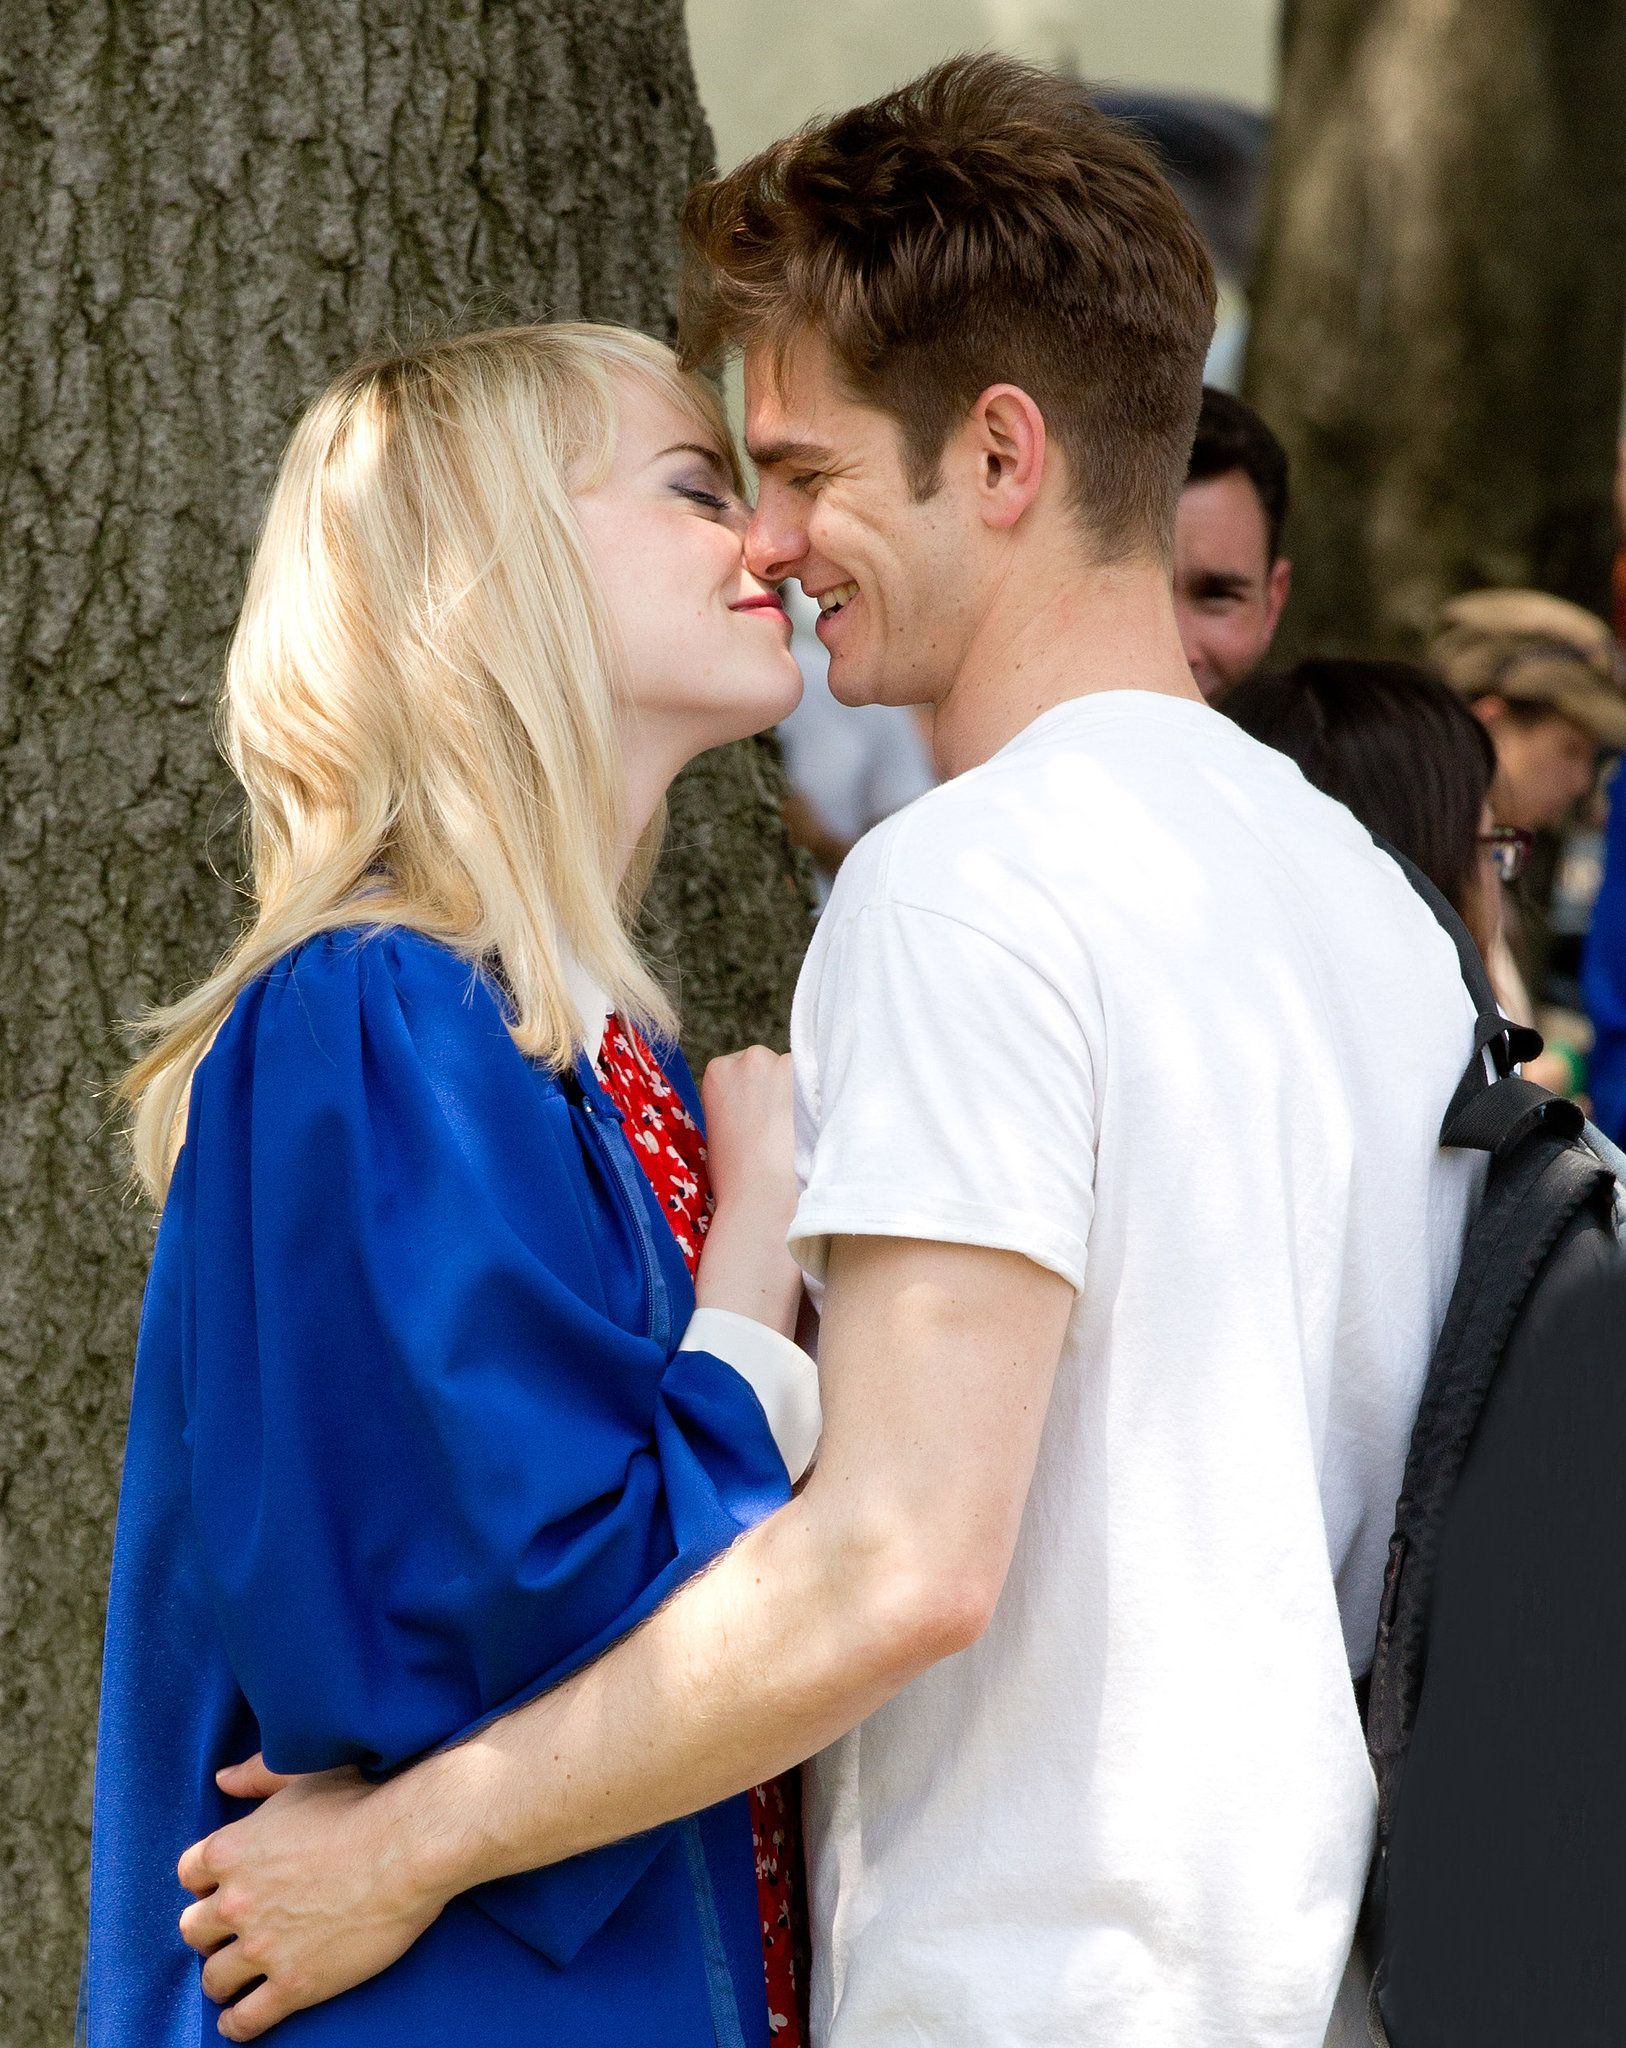 In June Andrew Garfield And Emma Stone Shared A Kiss On The Set